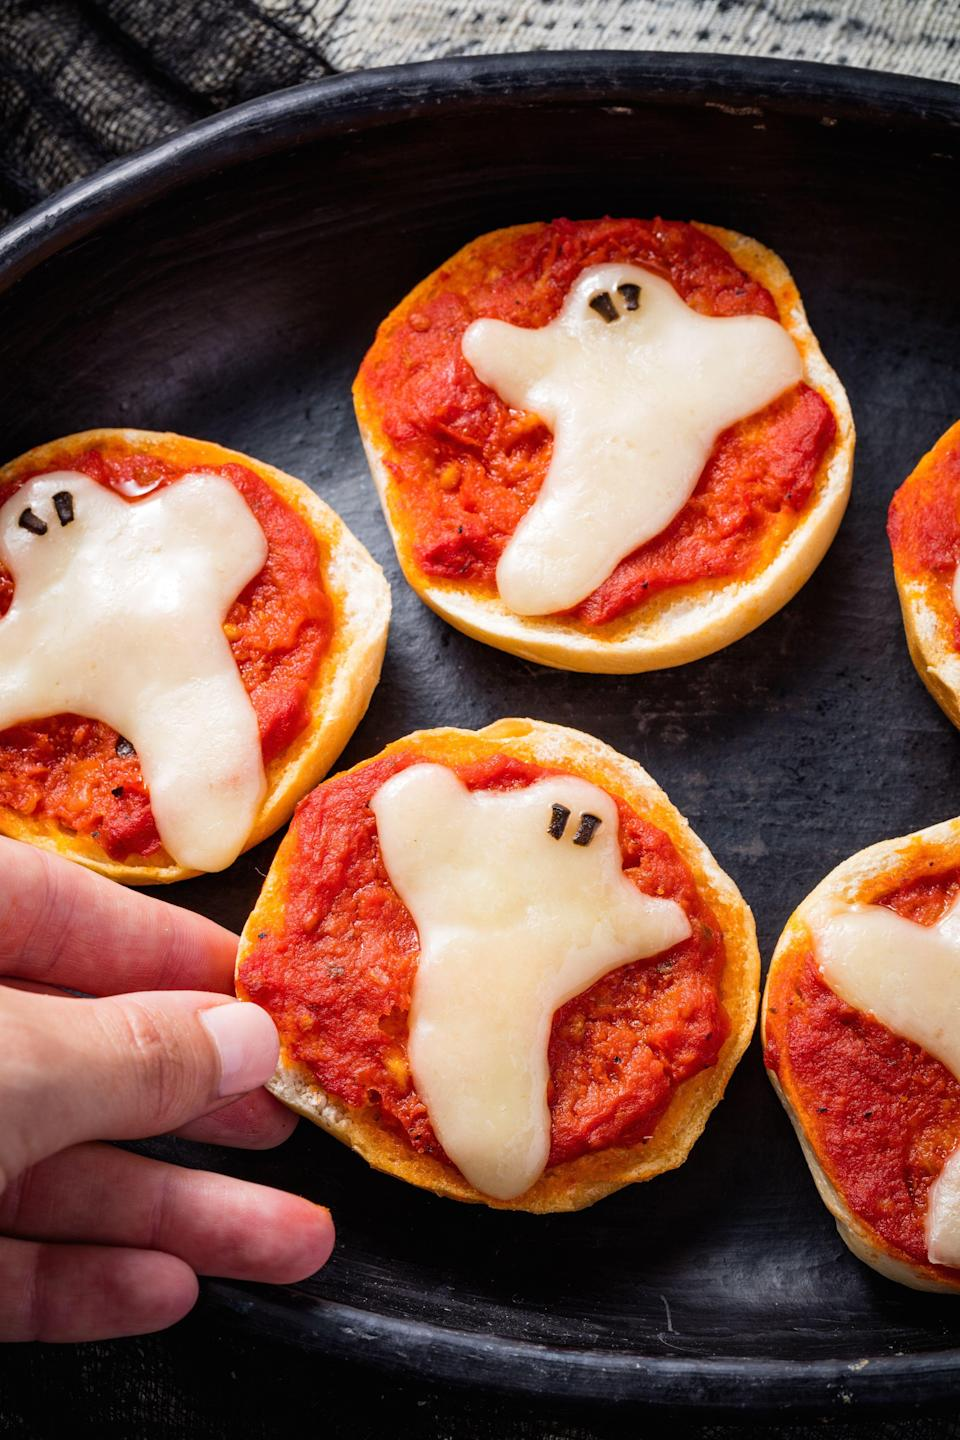 """<p>If you're <a href=""""https://www.delish.com/holiday-recipes/halloween/g1681/grown-up-halloween-party/"""" rel=""""nofollow noopener"""" target=""""_blank"""" data-ylk=""""slk:throwing a Halloween party"""" class=""""link rapid-noclick-resp"""">throwing a Halloween party</a>, you have to serve more than <a href=""""https://www.delish.com/food/g2990/best-new-halloween-candy/"""" rel=""""nofollow noopener"""" target=""""_blank"""" data-ylk=""""slk:candy"""" class=""""link rapid-noclick-resp"""">candy</a> and <a href=""""https://www.delish.com/holiday-recipes/halloween/g2471/halloween-drink-recipes/"""" rel=""""nofollow noopener"""" target=""""_blank"""" data-ylk=""""slk:alcohol"""" class=""""link rapid-noclick-resp"""">alcohol</a>. Luckily, we've got equally <a href=""""https://www.delish.com/holiday-recipes/halloween/g3493/halloween-snack-recipes/"""" rel=""""nofollow noopener"""" target=""""_blank"""" data-ylk=""""slk:festive bites"""" class=""""link rapid-noclick-resp"""">festive bites</a>, dips, <a href=""""https://www.delish.com/holiday-recipes/halloween/g151/halloween-desserts/"""" rel=""""nofollow noopener"""" target=""""_blank"""" data-ylk=""""slk:desserts"""" class=""""link rapid-noclick-resp"""">desserts</a>, and more to start your party off strong. Scroll through for Mummy Meatballs, Dracula Dentures, and PB Monster Munch. Then make sure to check out some <a href=""""https://www.delish.com/holiday-recipes/halloween/g3044/halloween-punch/"""" rel=""""nofollow noopener"""" target=""""_blank"""" data-ylk=""""slk:Halloween punch"""" class=""""link rapid-noclick-resp"""">Halloween punch</a> recipes too...you know, for good measure.</p>"""